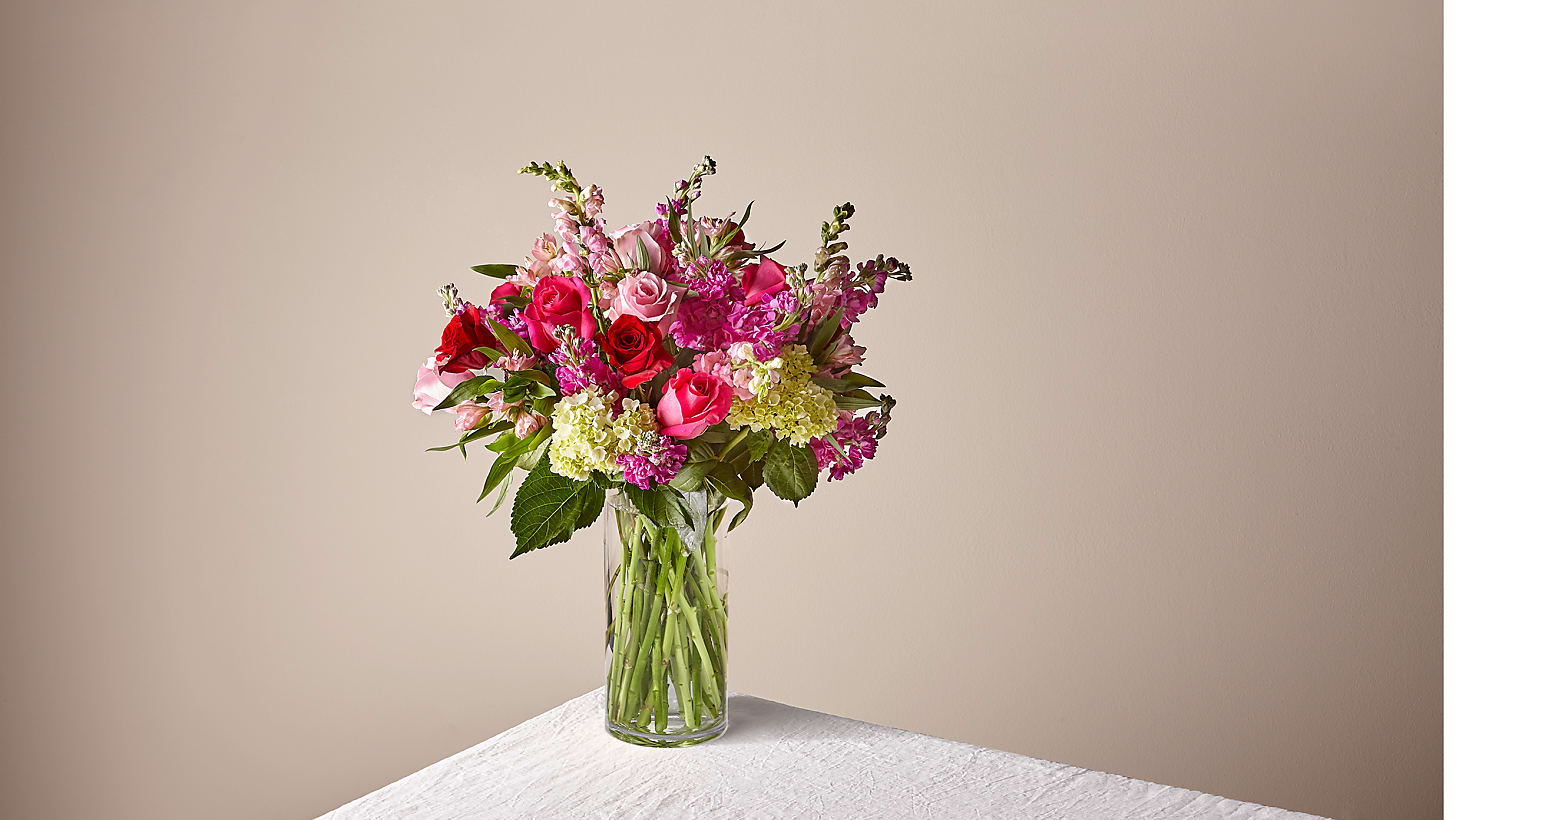 You & Me Luxury Bouquet - Image 6 Of 6